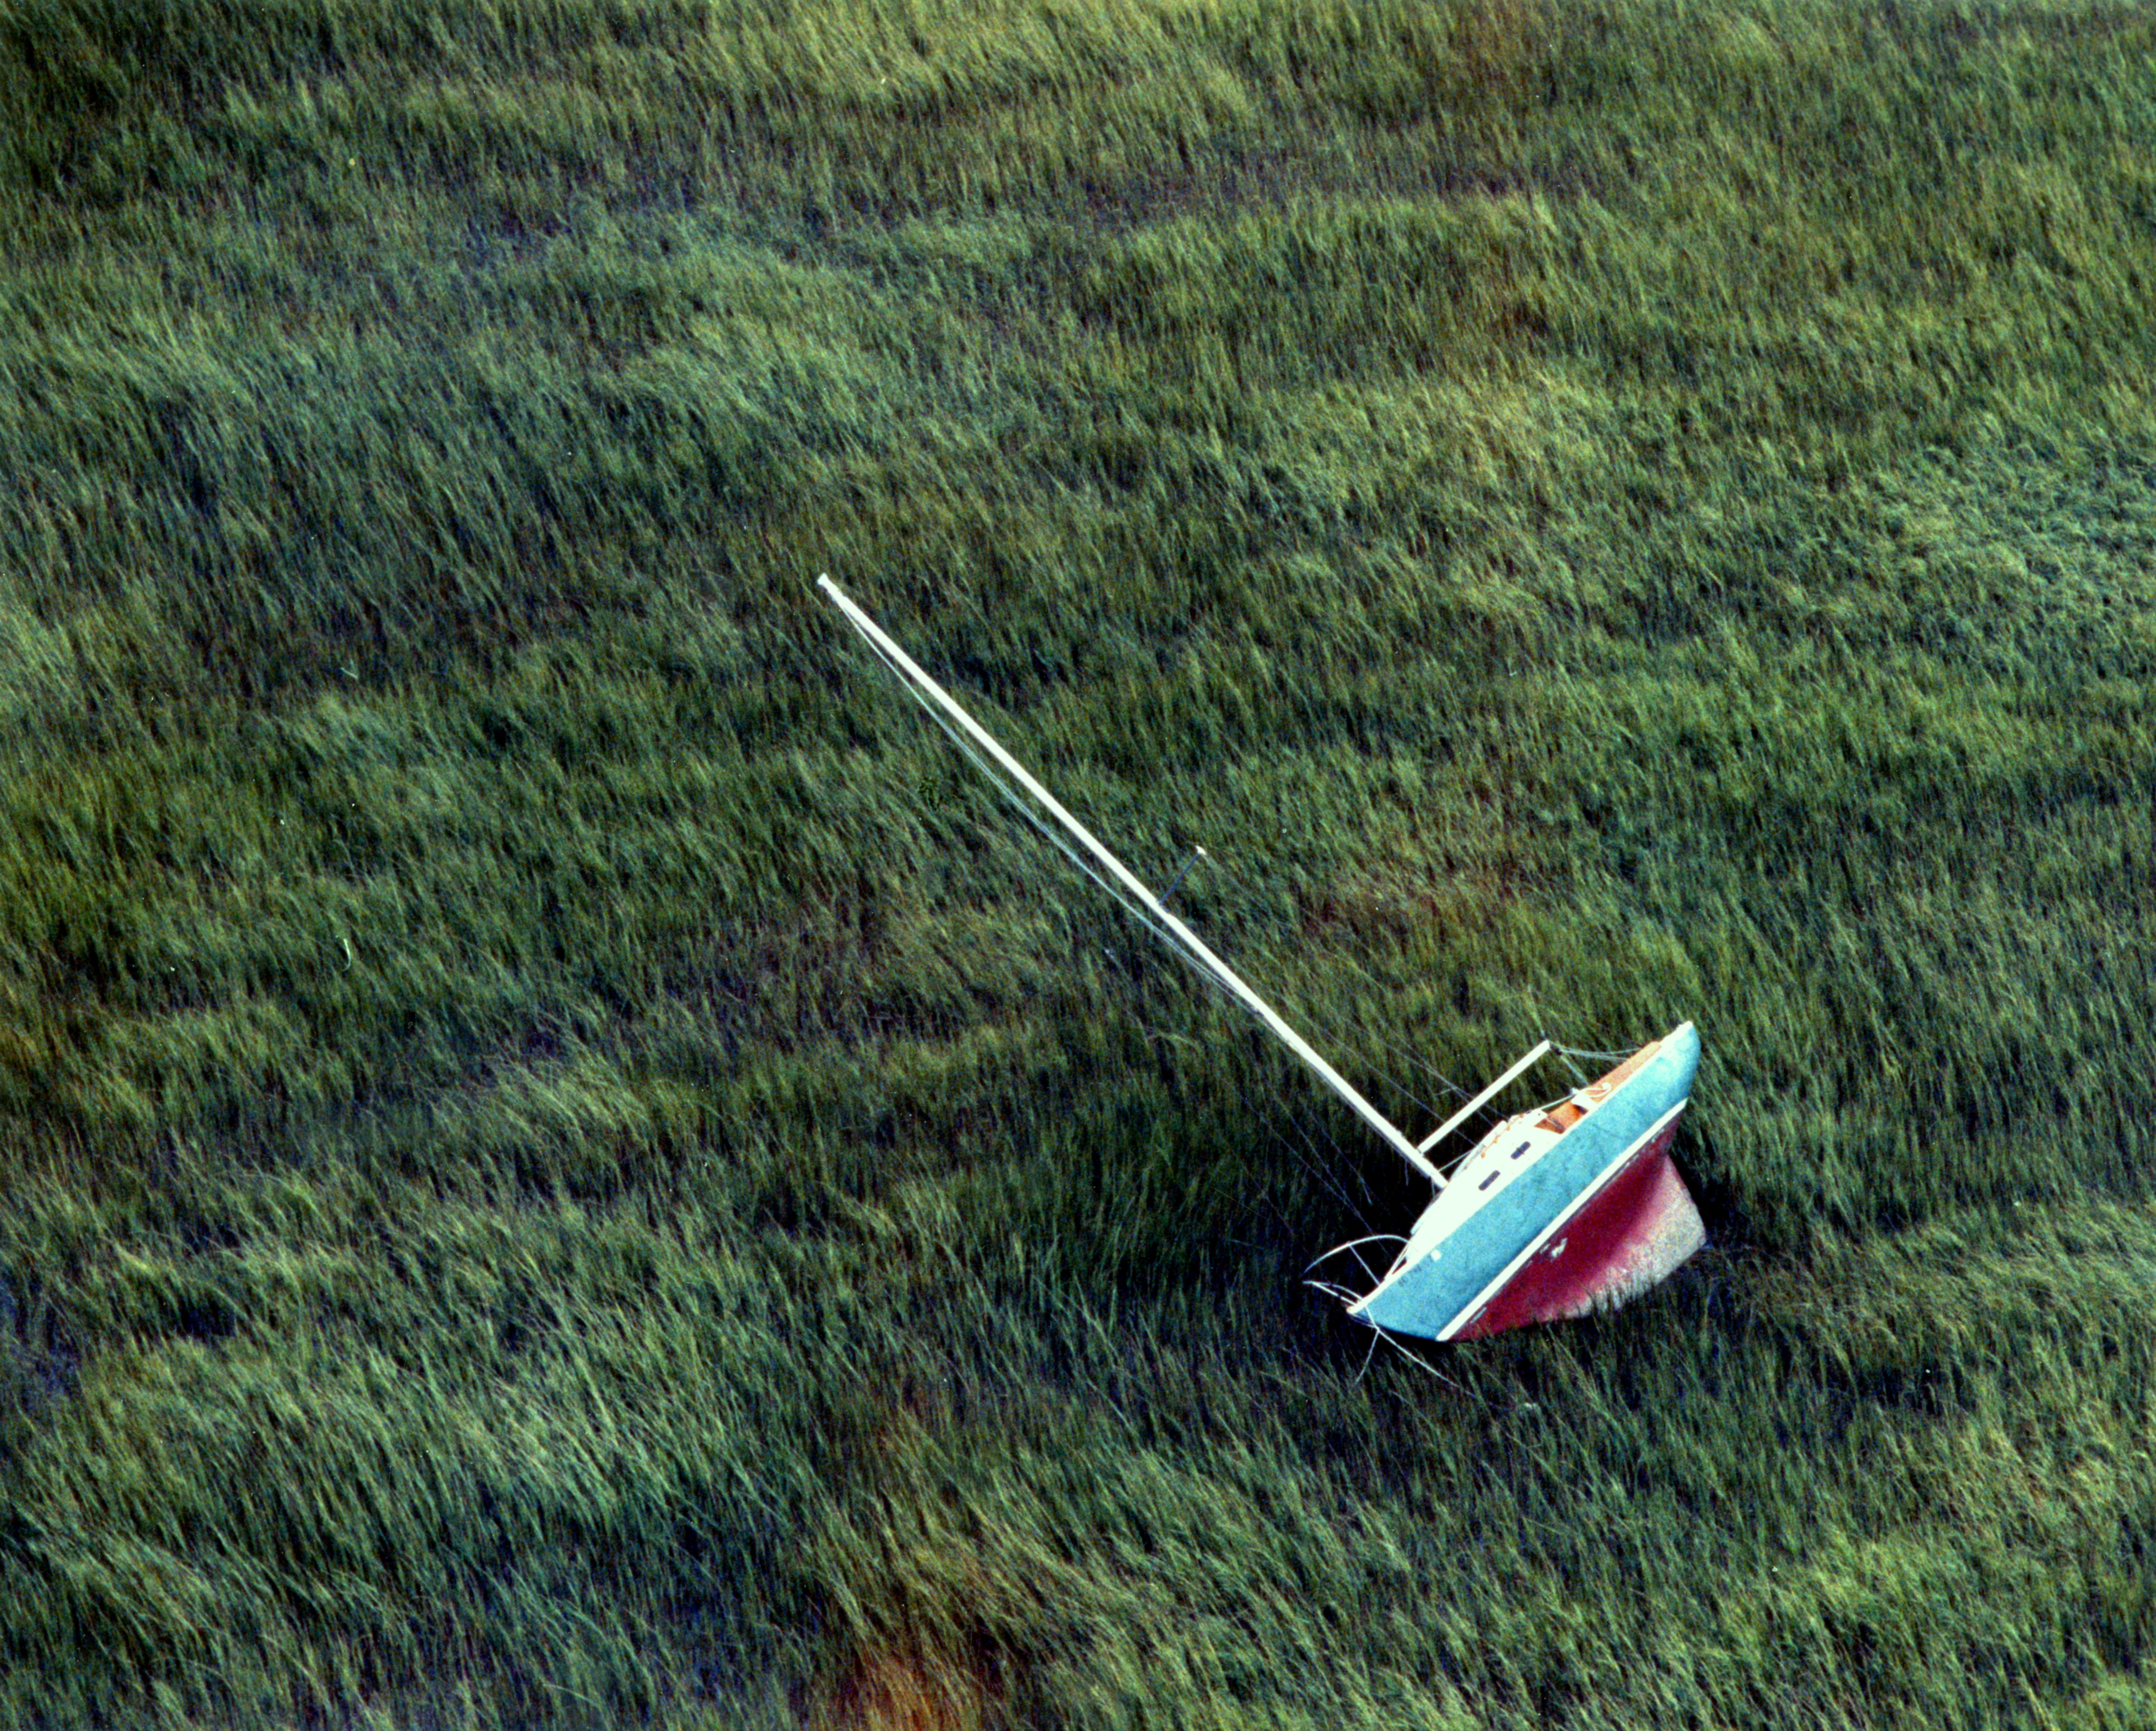 Sail boat washes up in the marsh during Hurricane Hugo